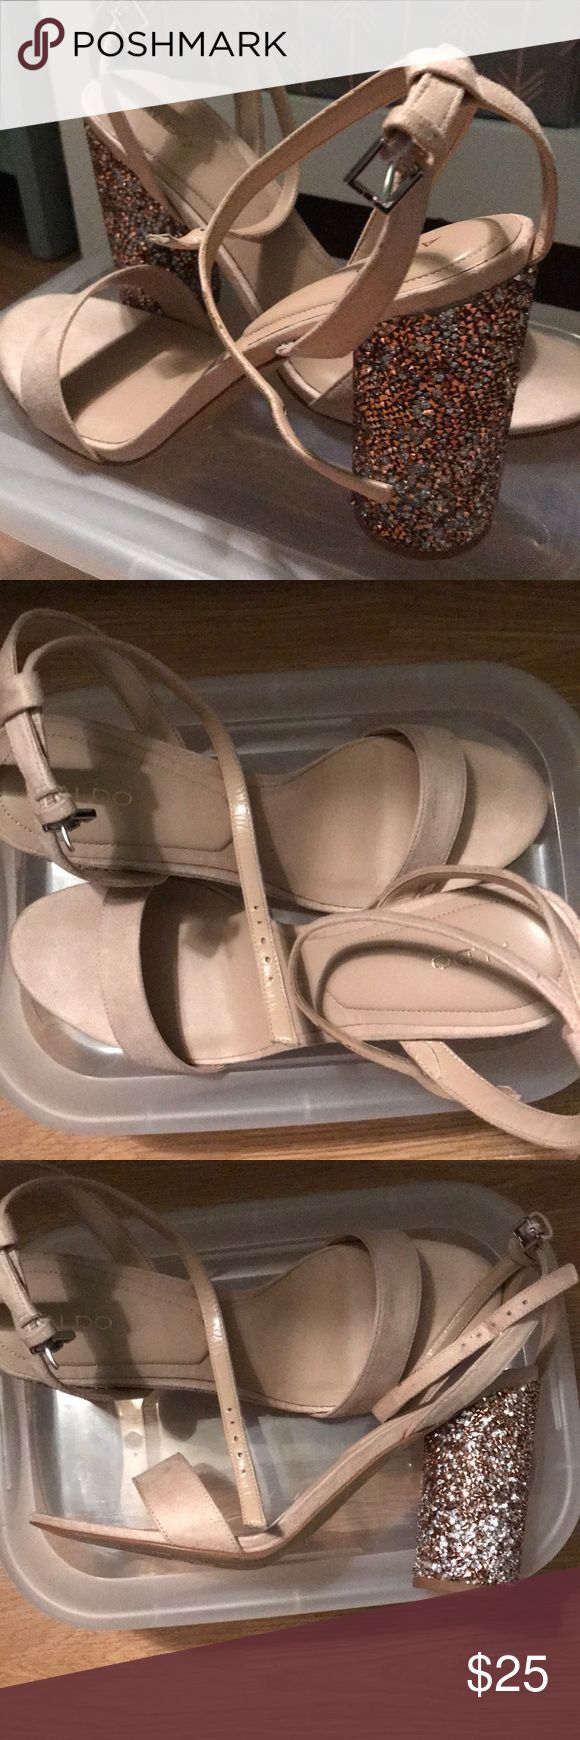 Aldo size 11 shoes So cute perfect for a party or night out also size 11 shoes. Worn once Aldo Shoes Heels